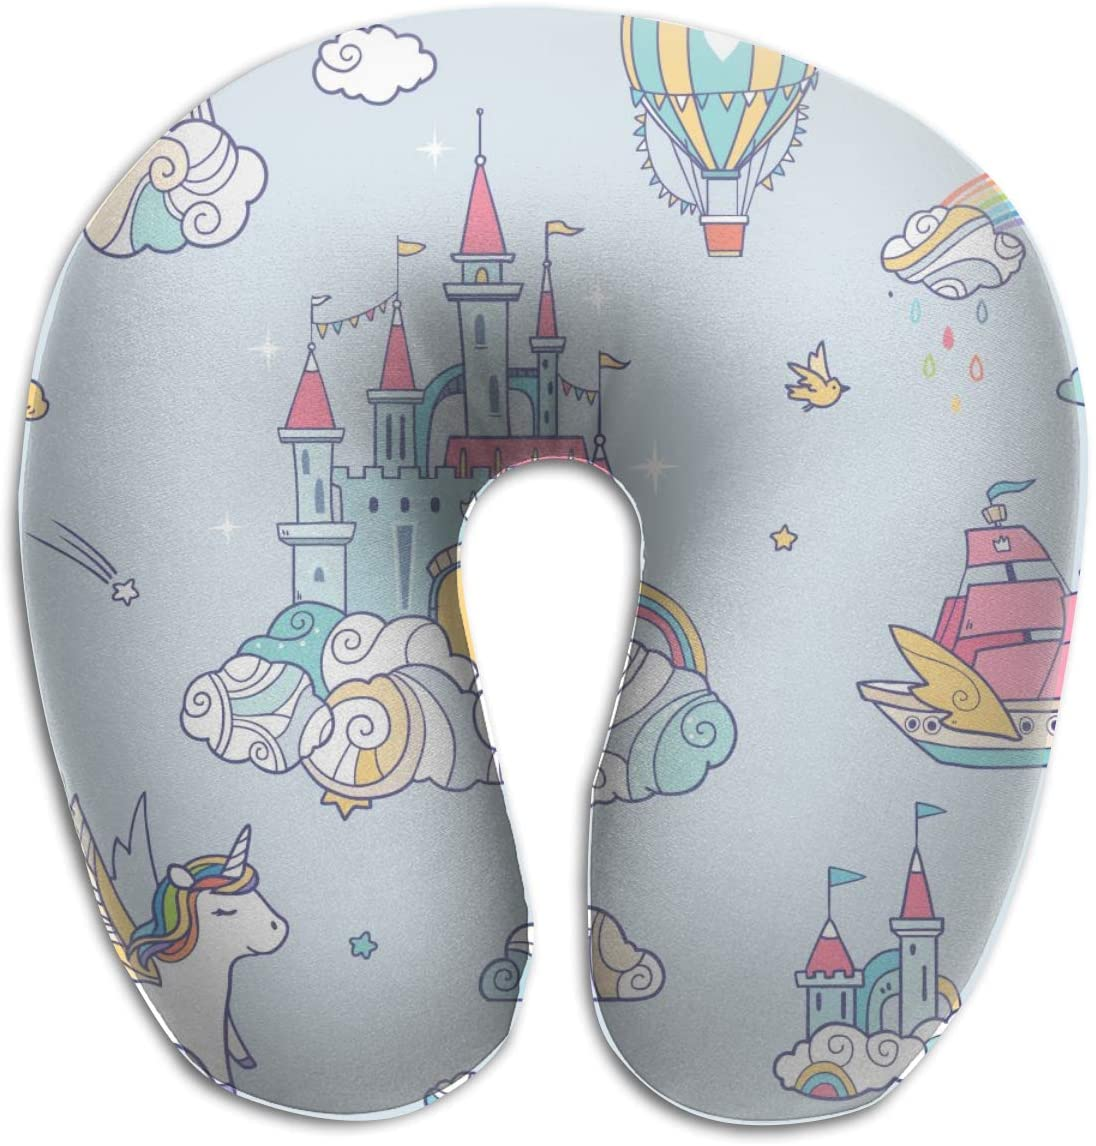 Comfortable U Shaped Neck Pillow,Seamless Pattern With Fairy Cloud Castle Neck Pain Relief Pillow Neck Support Pillow for Airplanes Washable Cotton Cover Buckwheat Hulls Filling Concealed Zipper